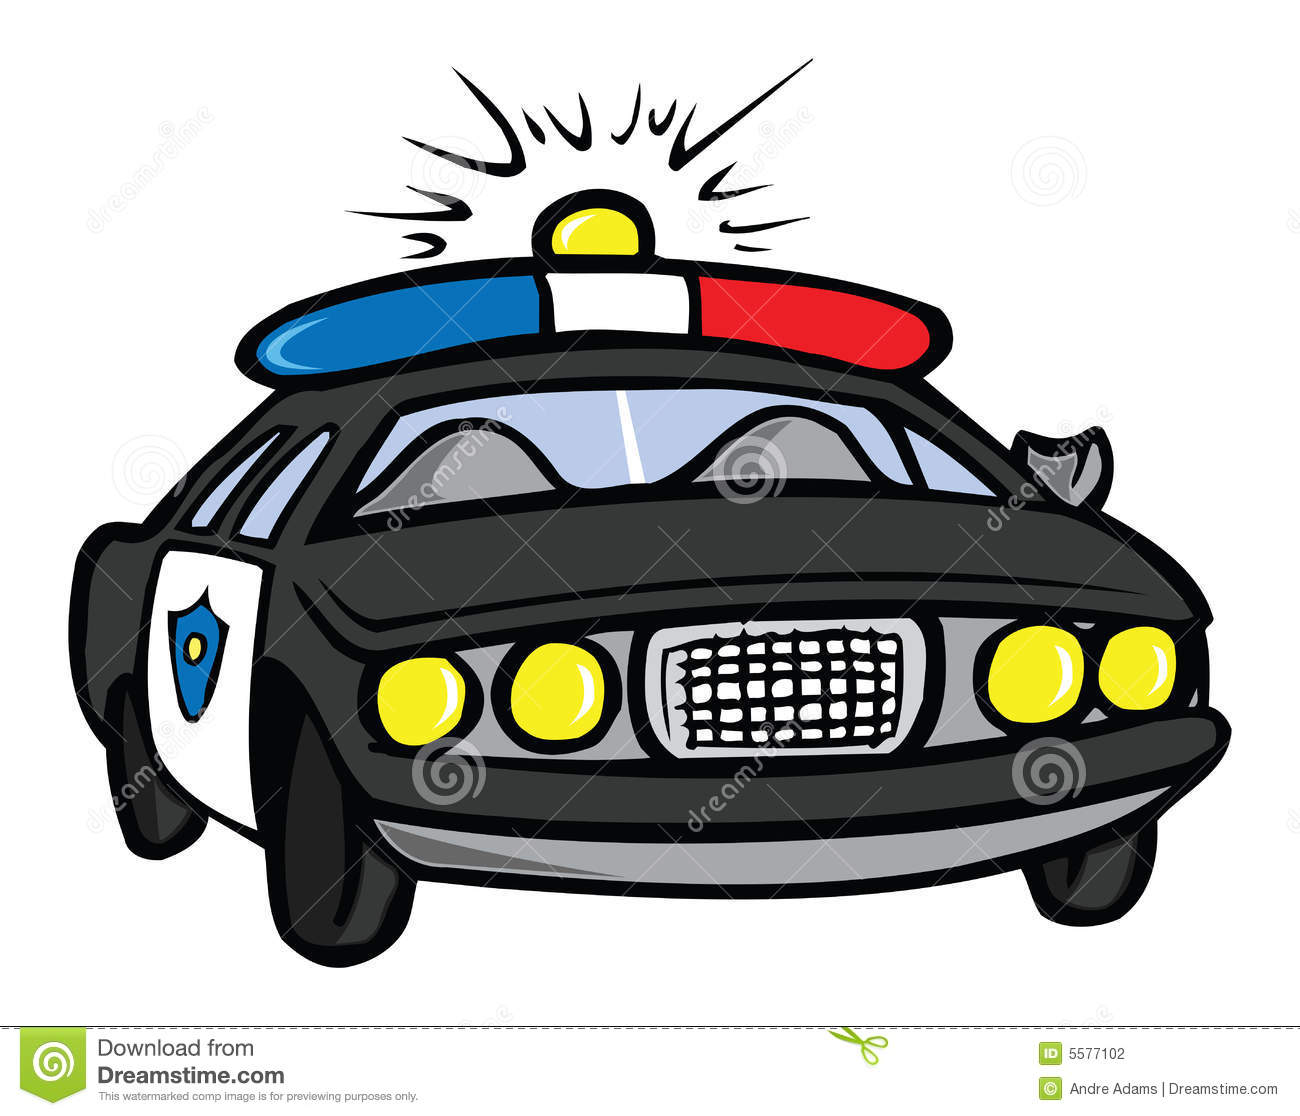 Police officer car clipart banner freeuse library Police Officer Badge Stock Illustrations – 1,769 Police Officer ... banner freeuse library